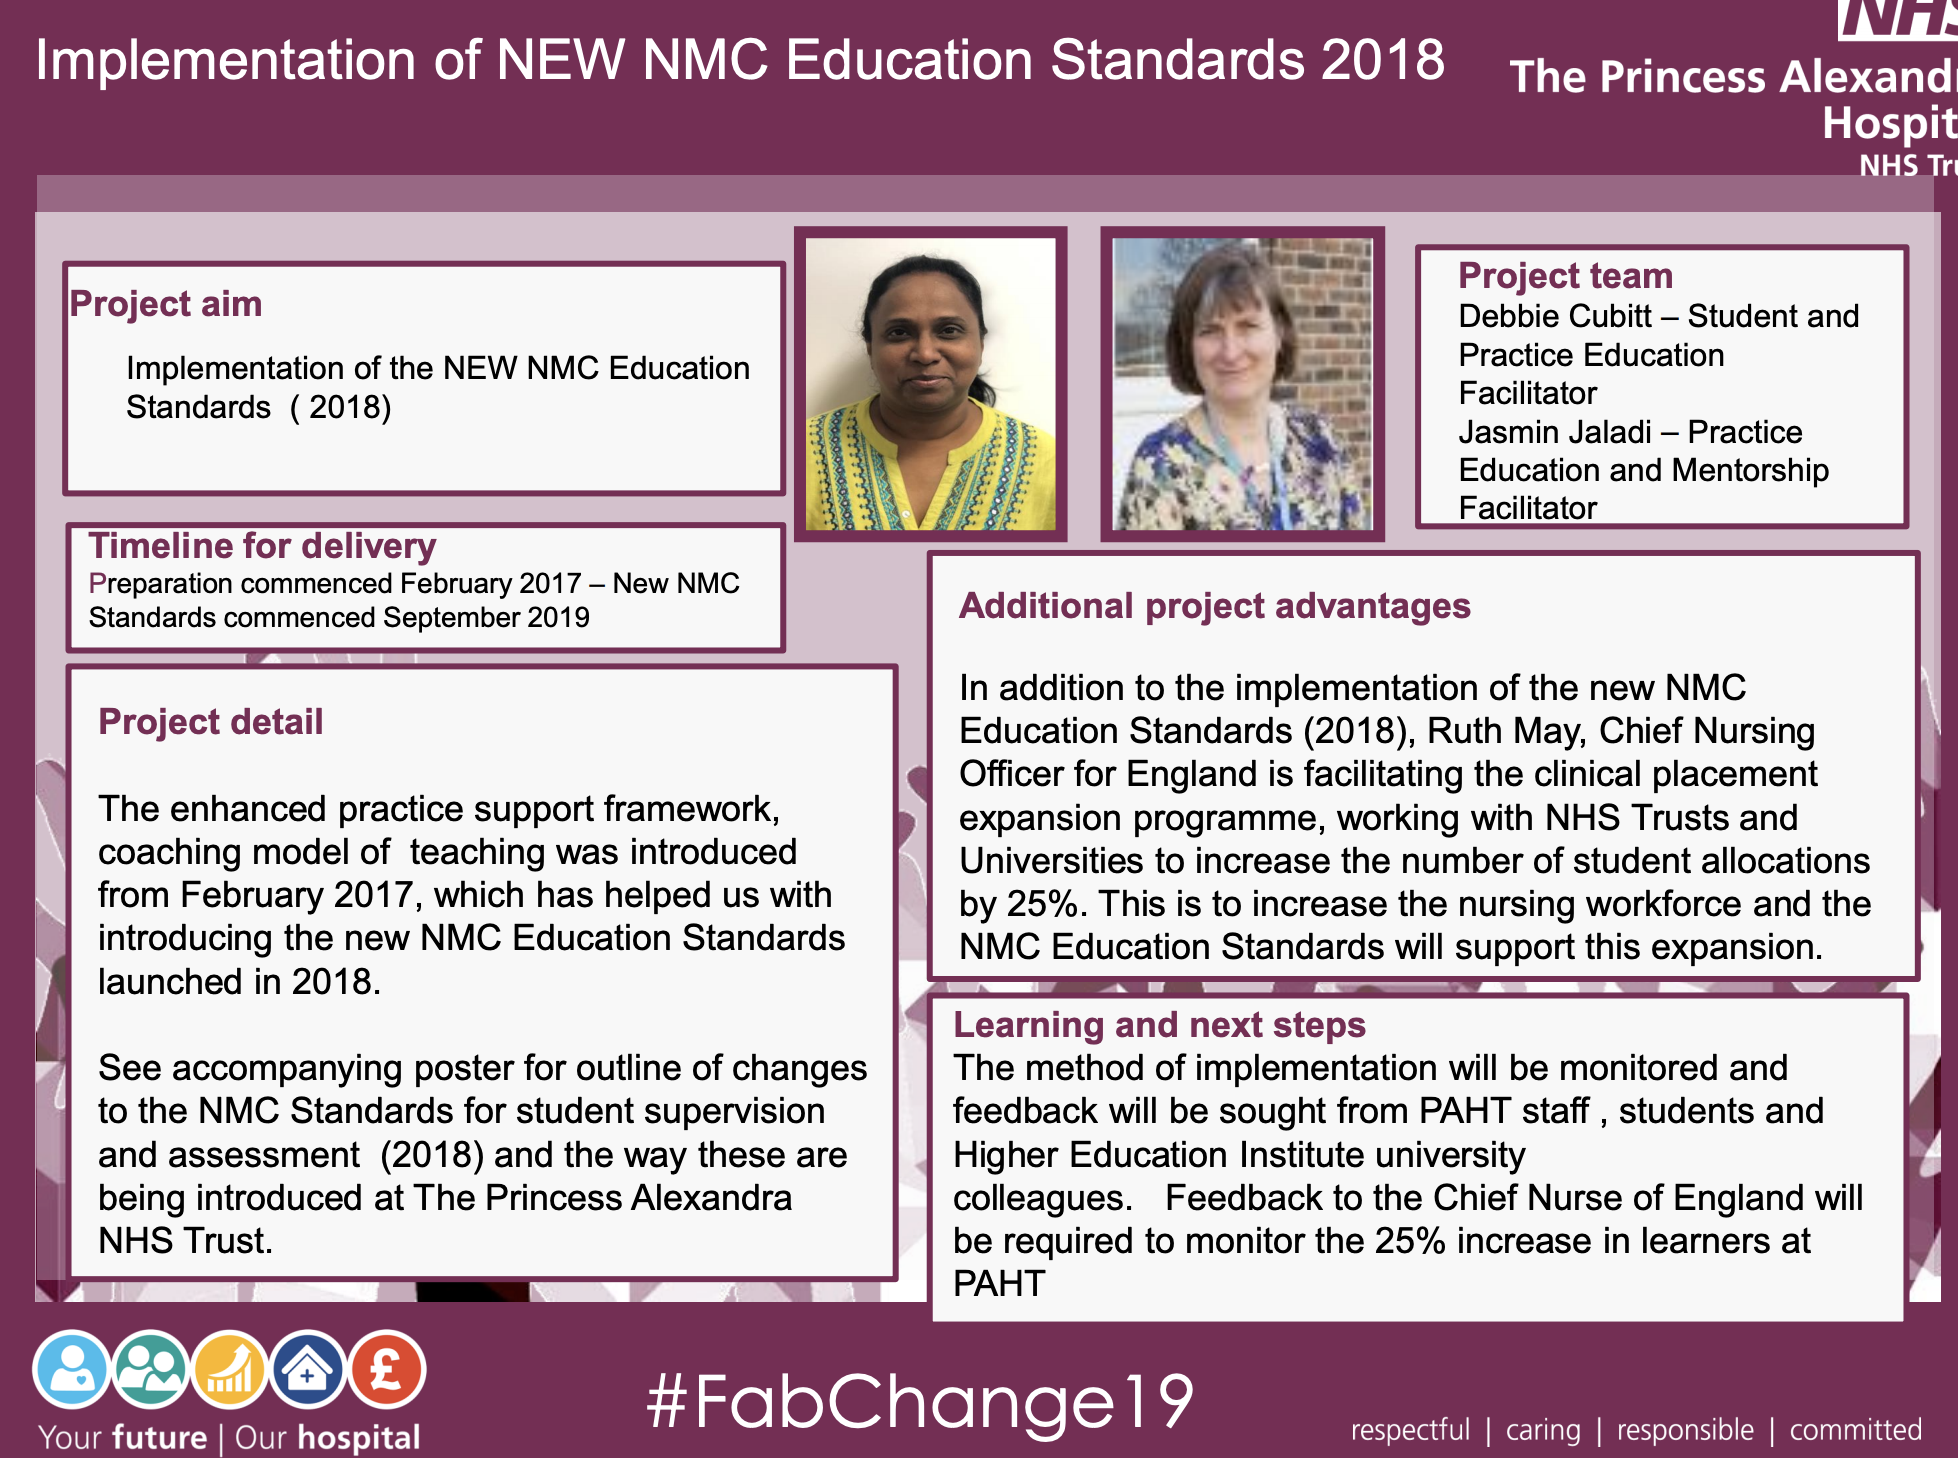 PAHT - Implementation of NEW NMC Education Standards 2018 - @QualityFirstPAH featured image